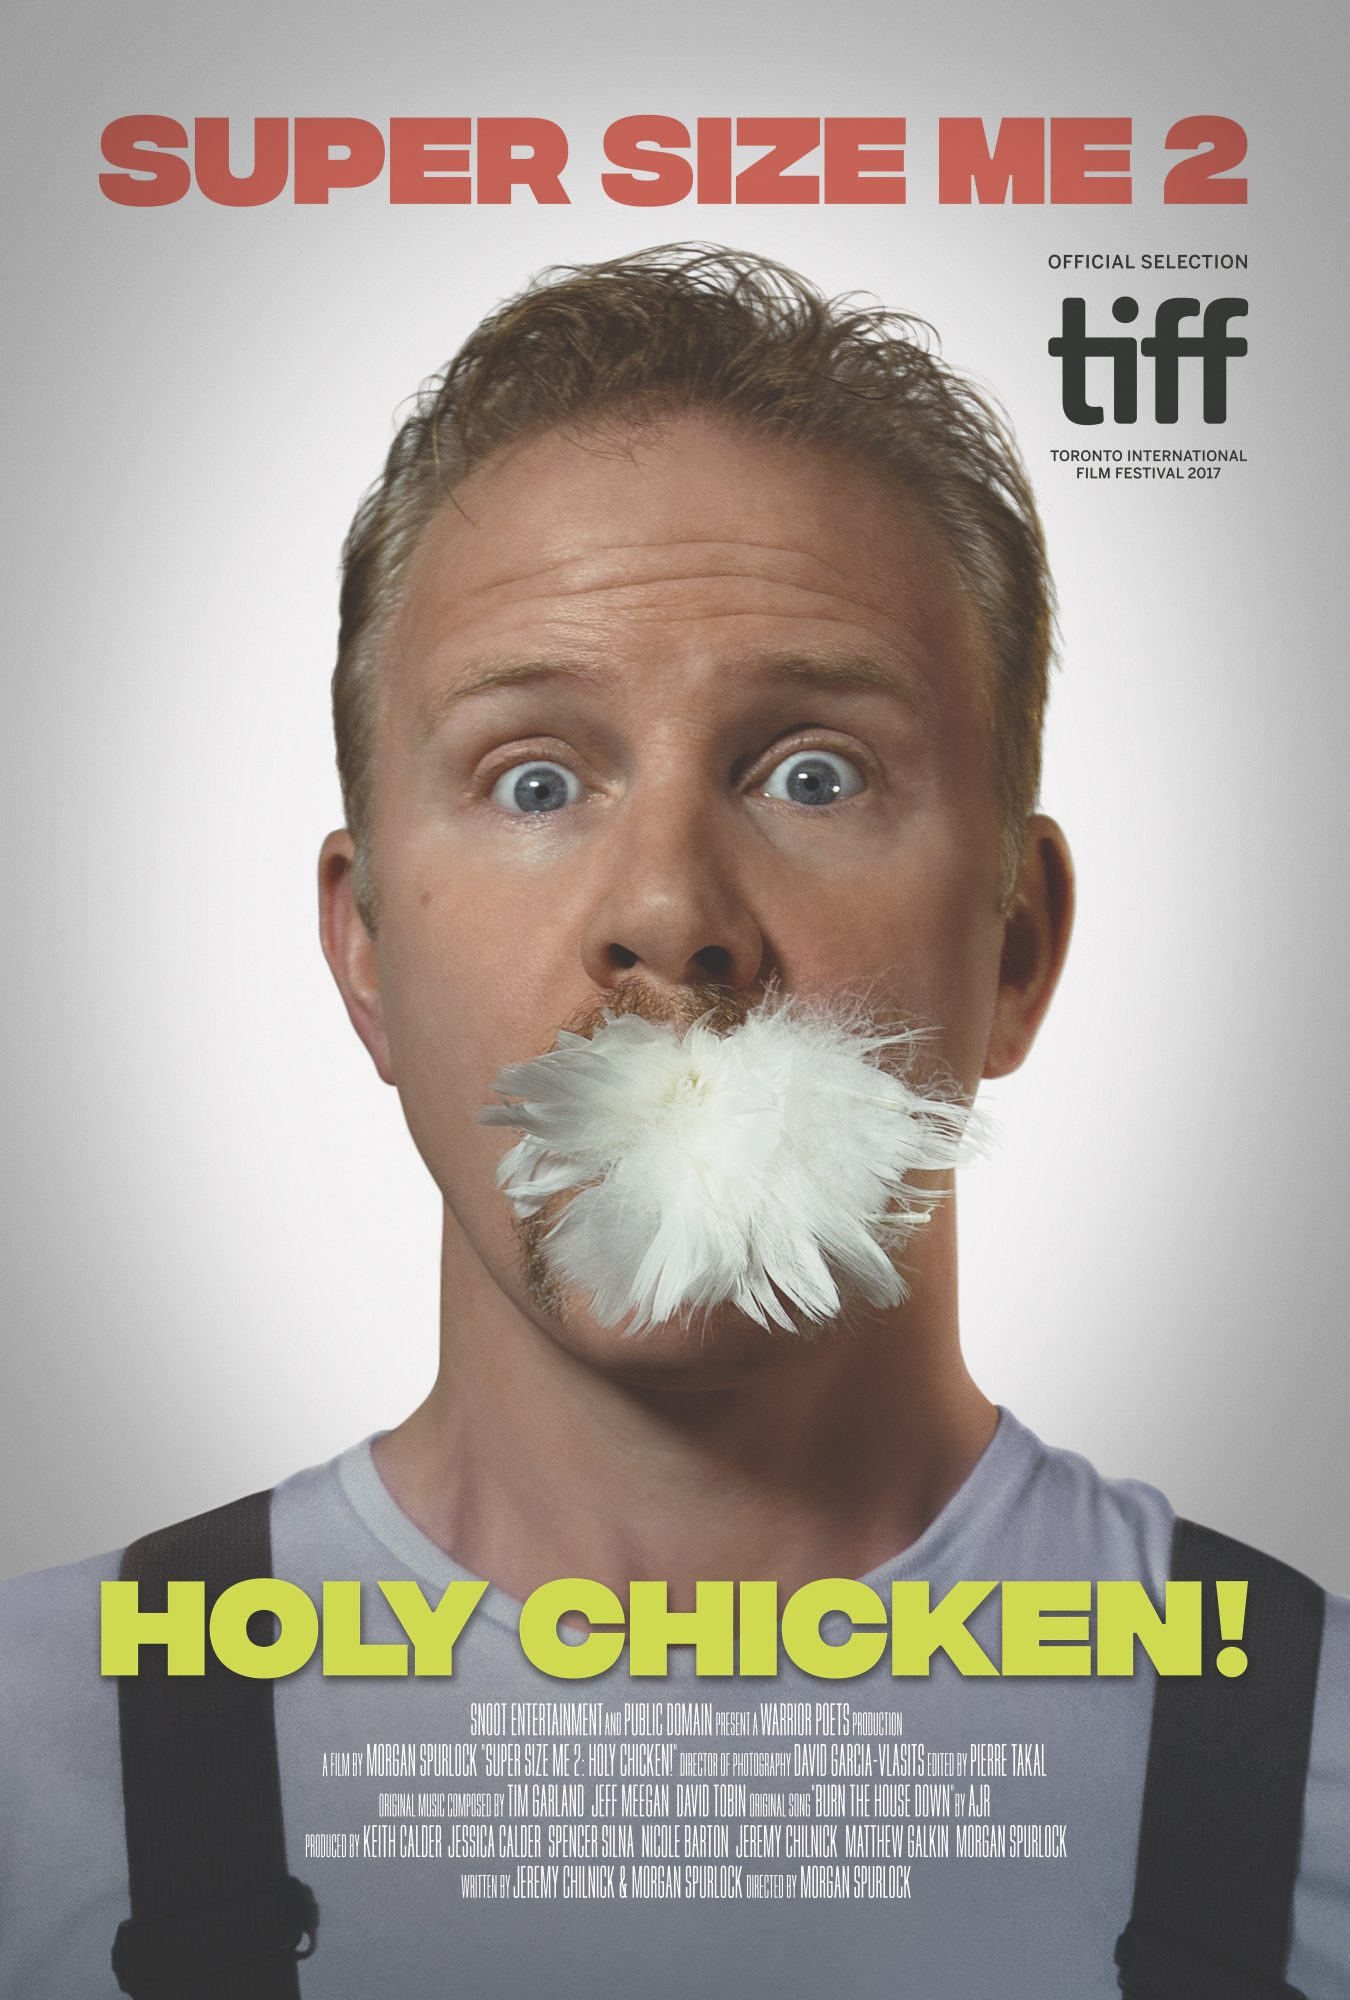 Morgan Spurlock's long-awaited 'Super Size Me'sequel is here: See the new posters